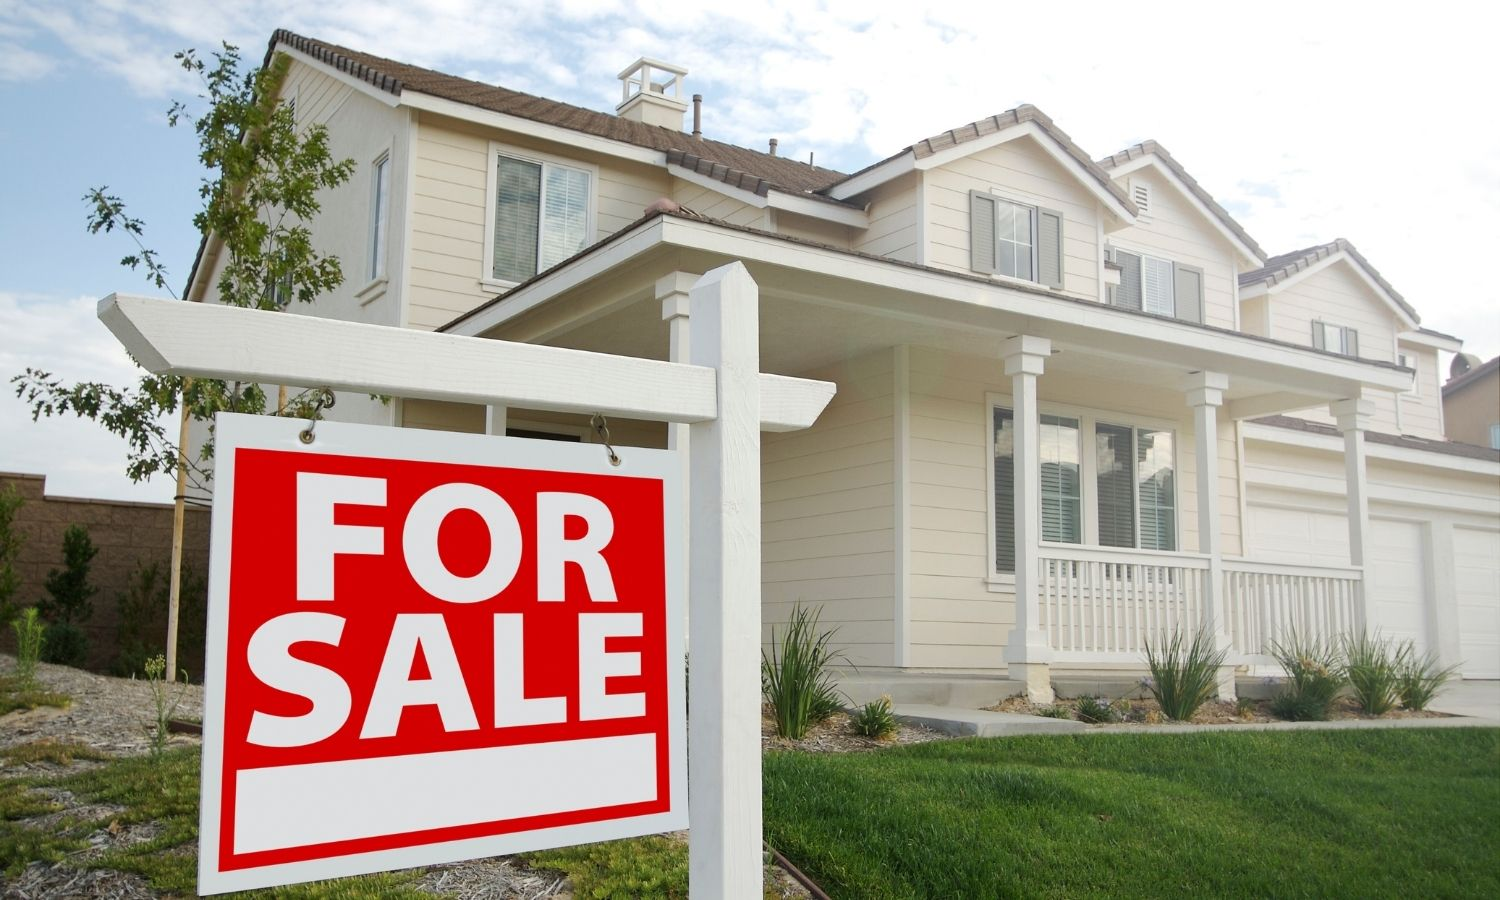 homes for sale kentwood mi